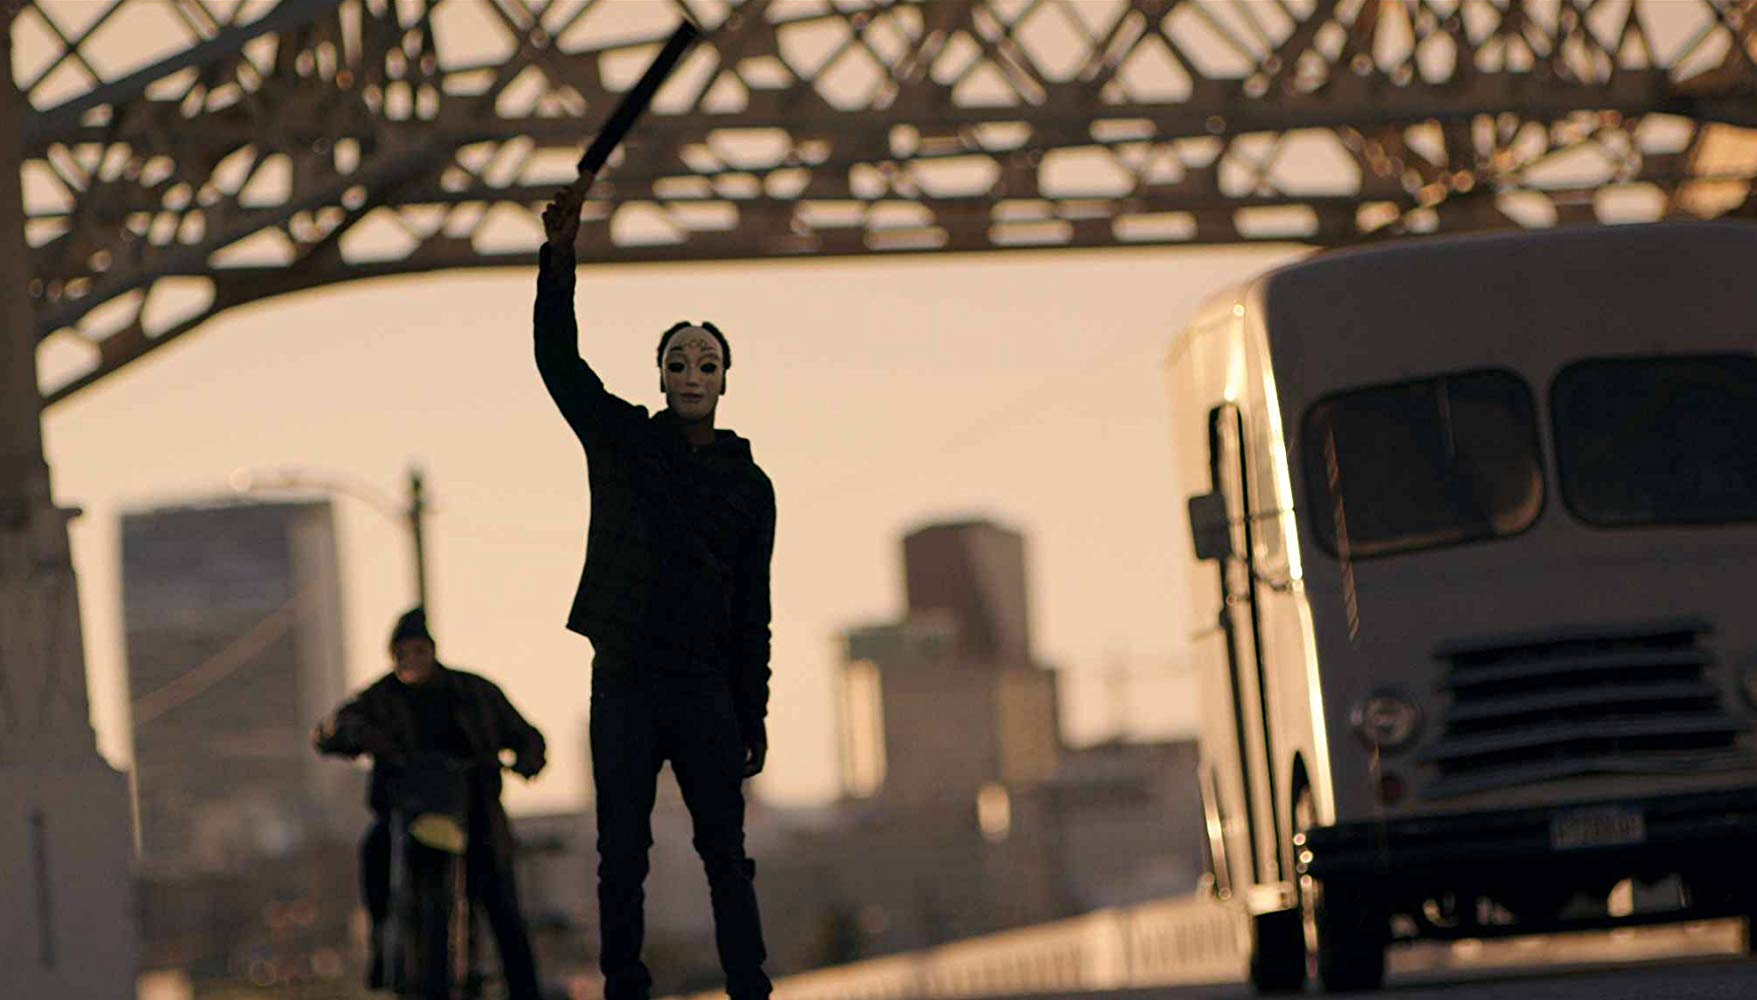 Crazies in the streets on Purge Night in The Purge: Anarchy (2014)